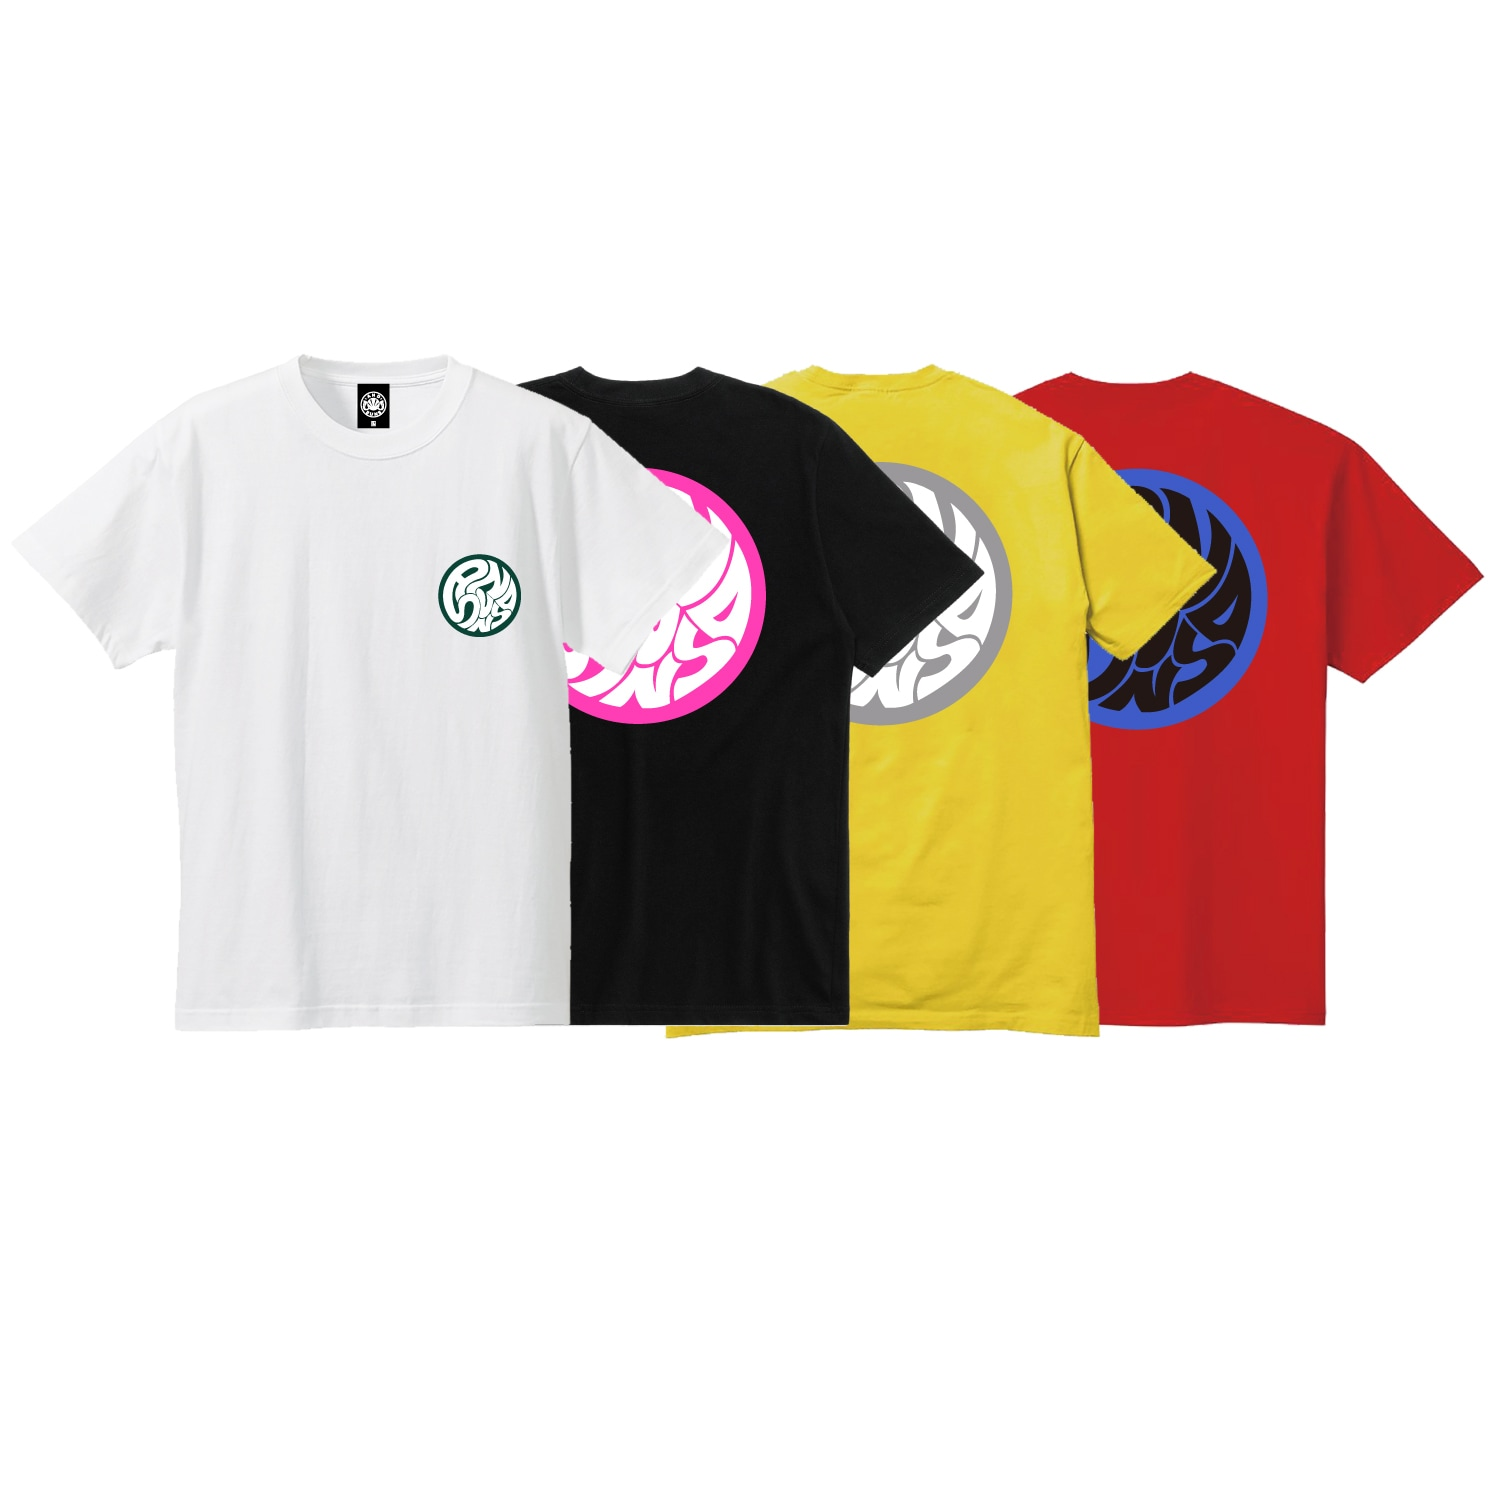 SWIRLING SUNS SS TEE (WHITE)